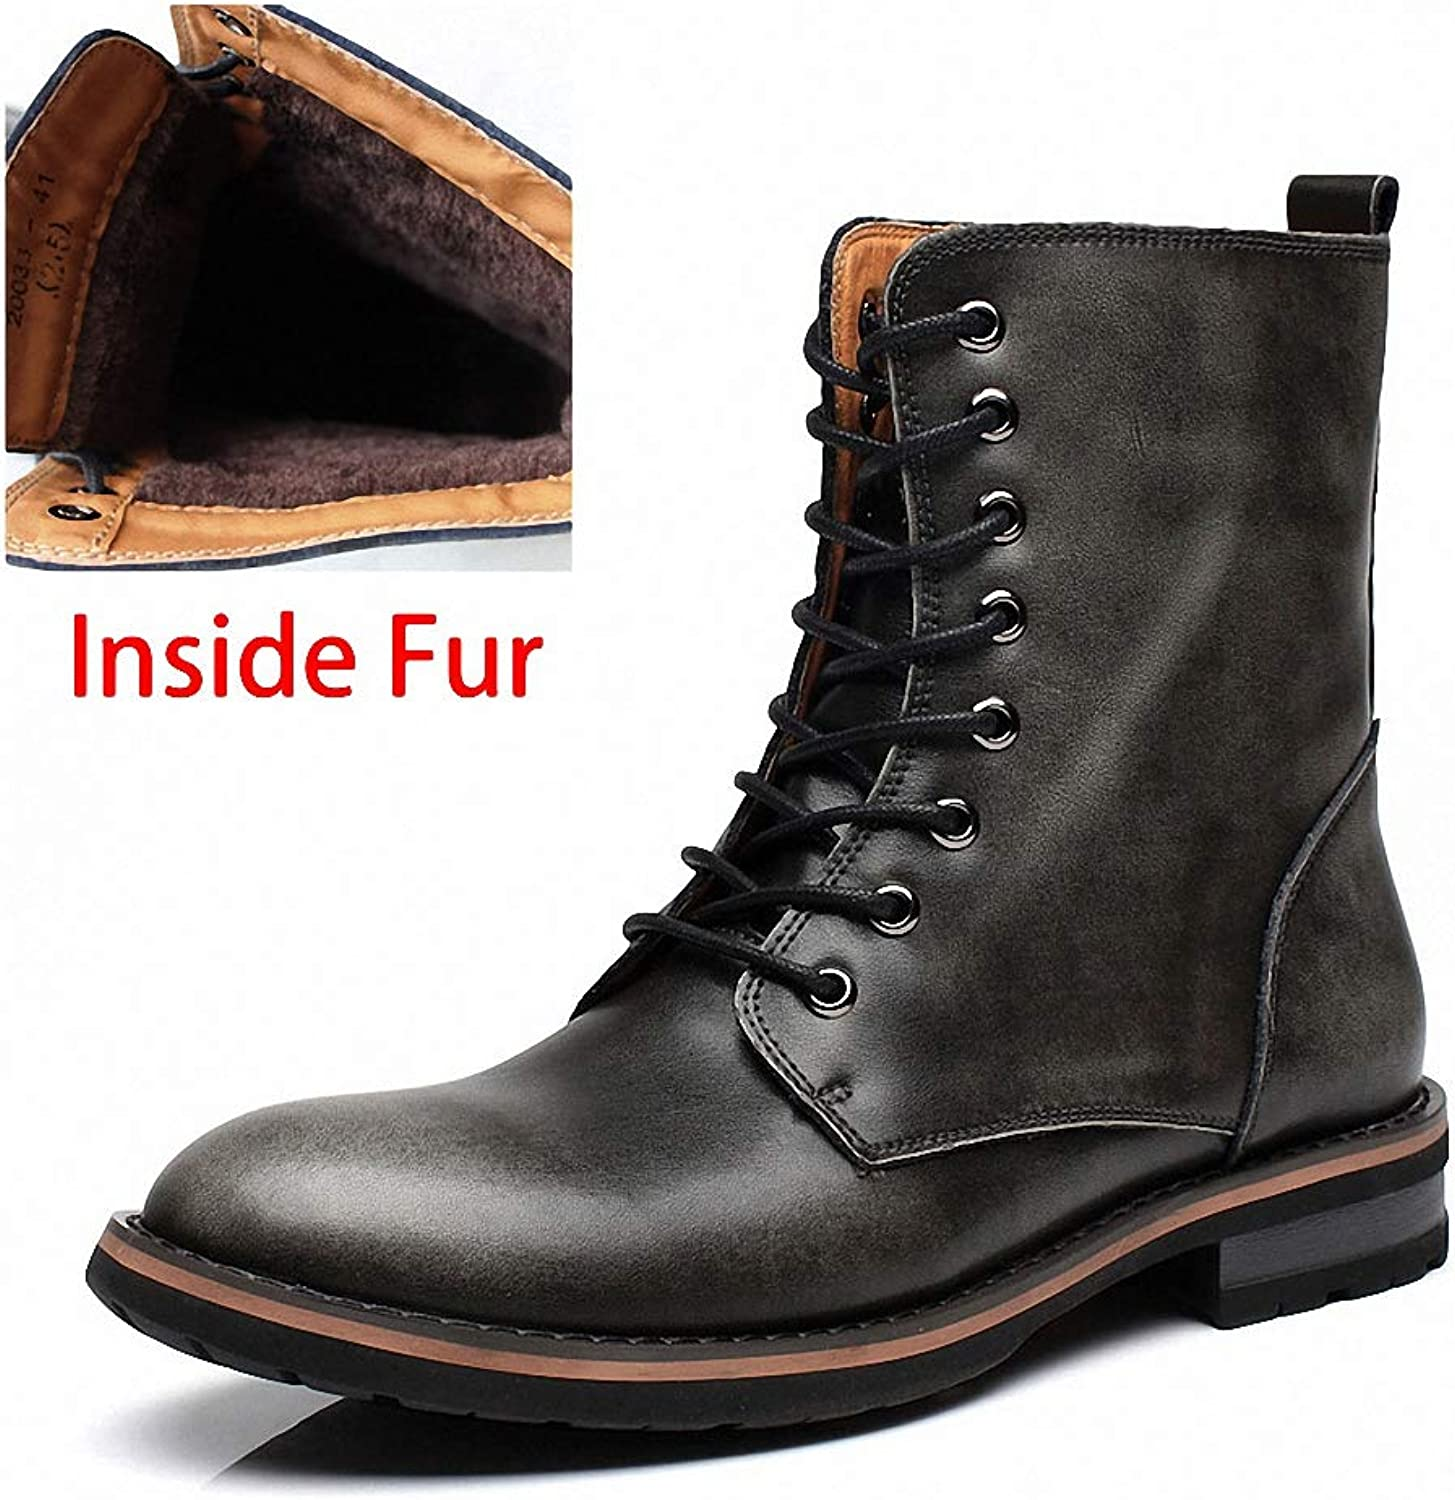 Mens Backpacking Boots Men Motorcycle Boots Vintage Combat Boot Winter Fur New Cow Split Leather Waterproof Buckle Military Boots Men shoes